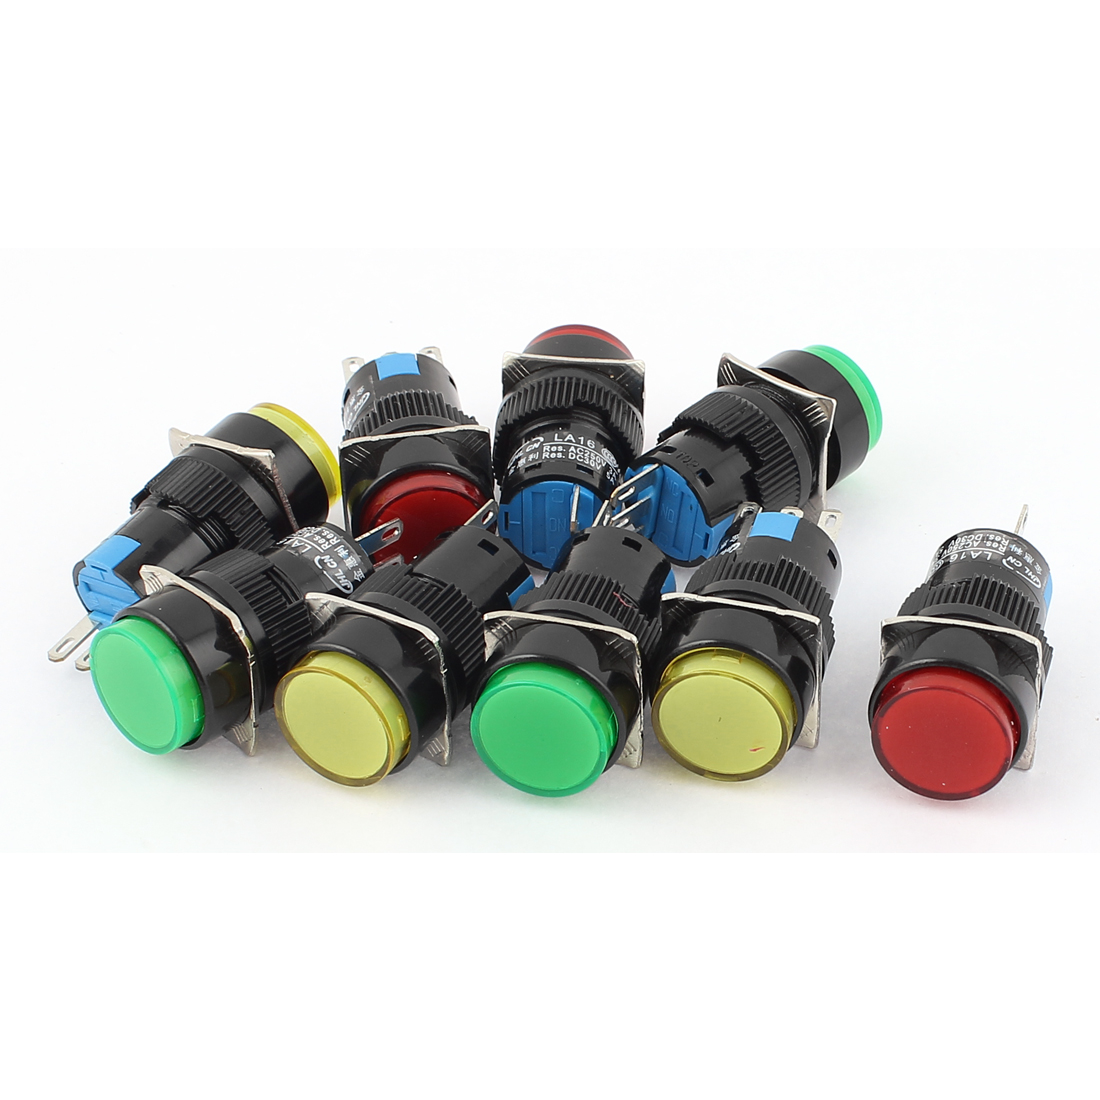 9pcs 3Terminal AC250V 3A DC30V 5A Momentary SPDT Push Button Switch w Red Insulated Crimp Terminal